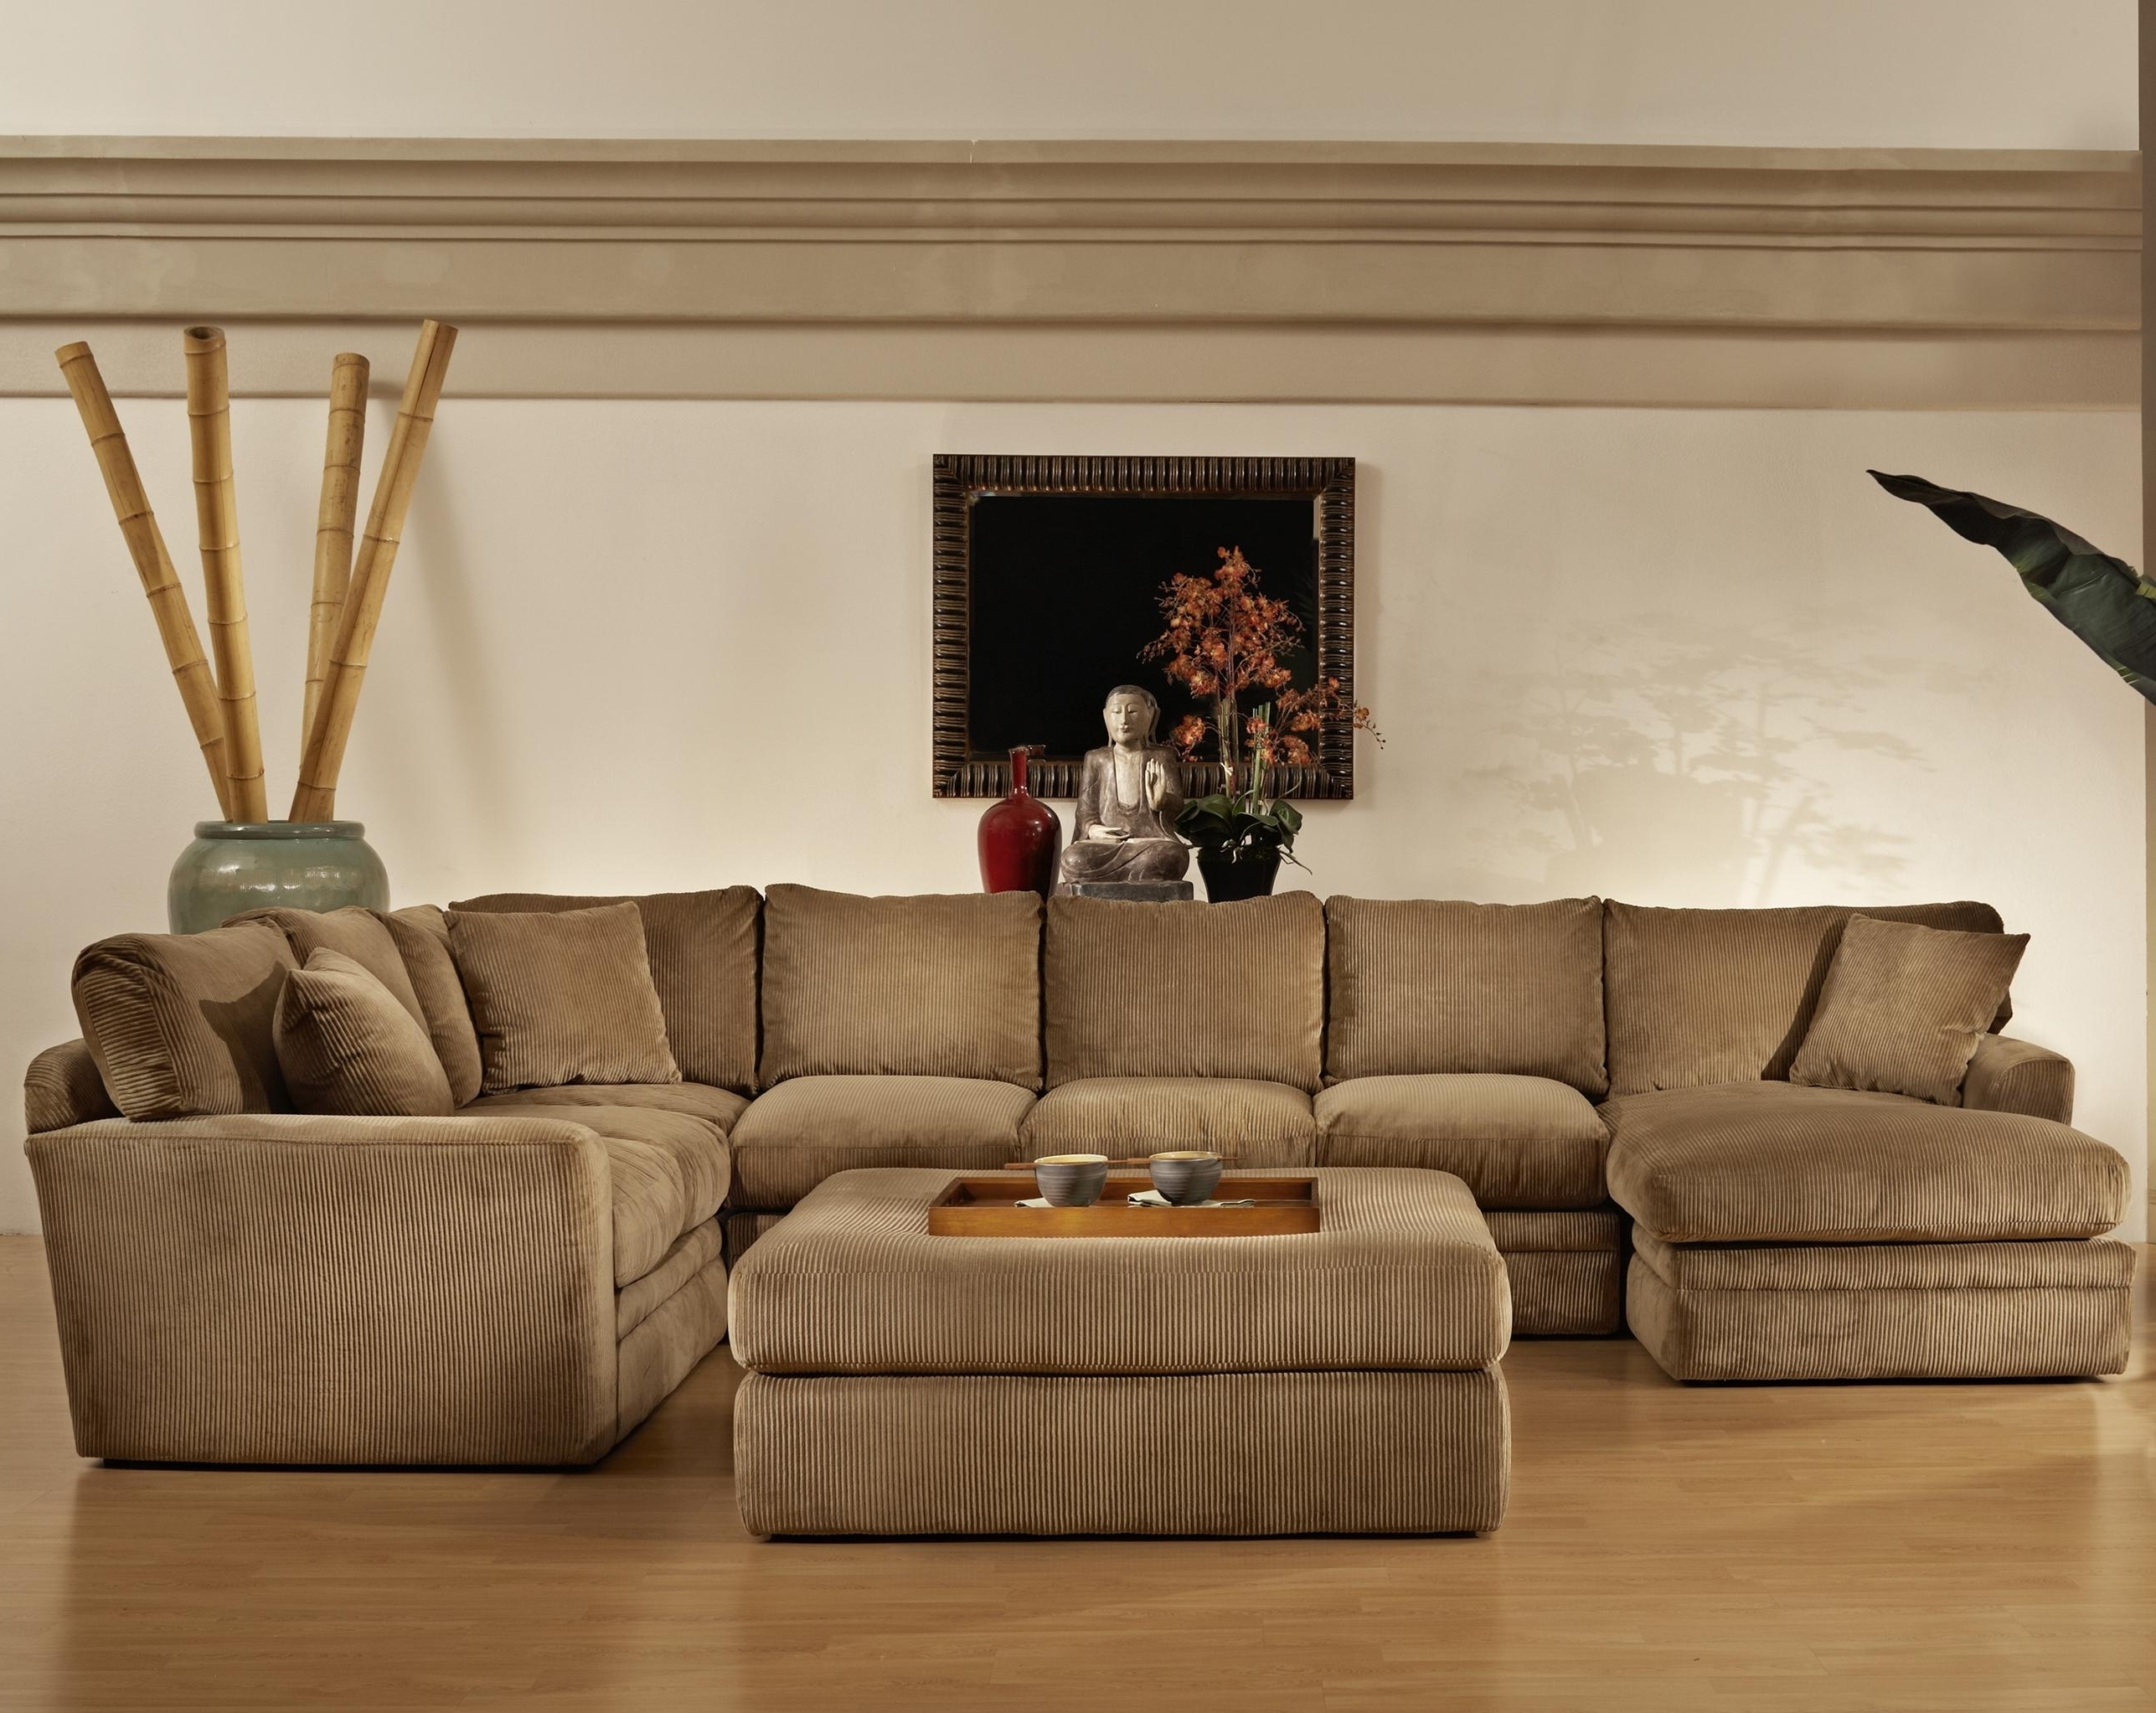 Transitional Style Extra Large Sectional Sofas With Chaise Baker With Most Current Large Comfortable Sectional Sofas (View 12 of 15)